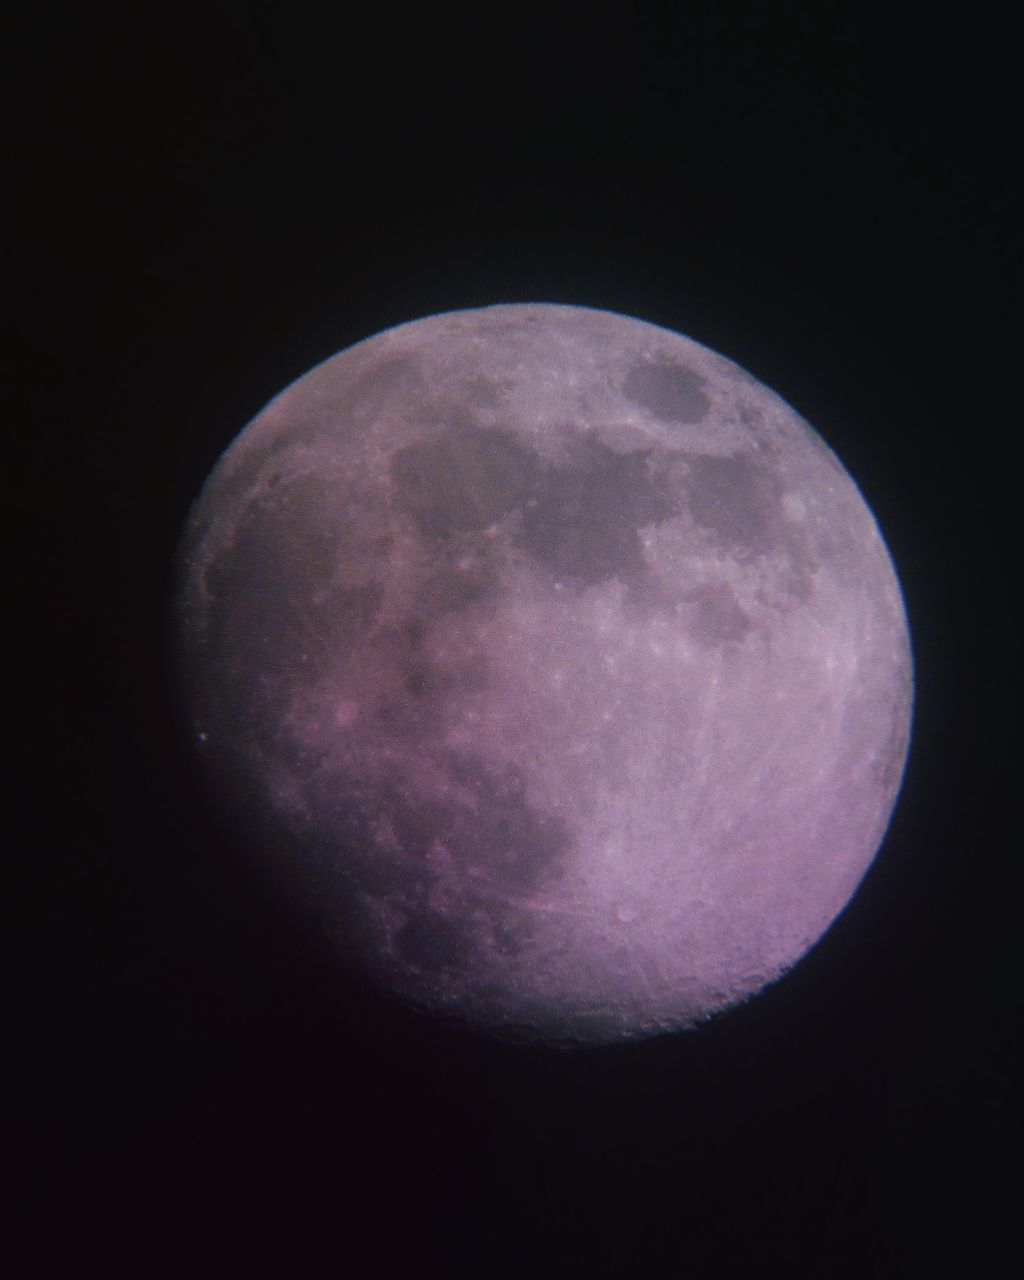 moon, space, astronomy, night, planetary moon, moon surface, sky, beauty in nature, circle, no people, geometric shape, scenics - nature, nature, low angle view, tranquility, tranquil scene, full moon, shape, space exploration, sphere, outdoors, dark, space and astronomy, moonlight, astrology, purple, eclipse